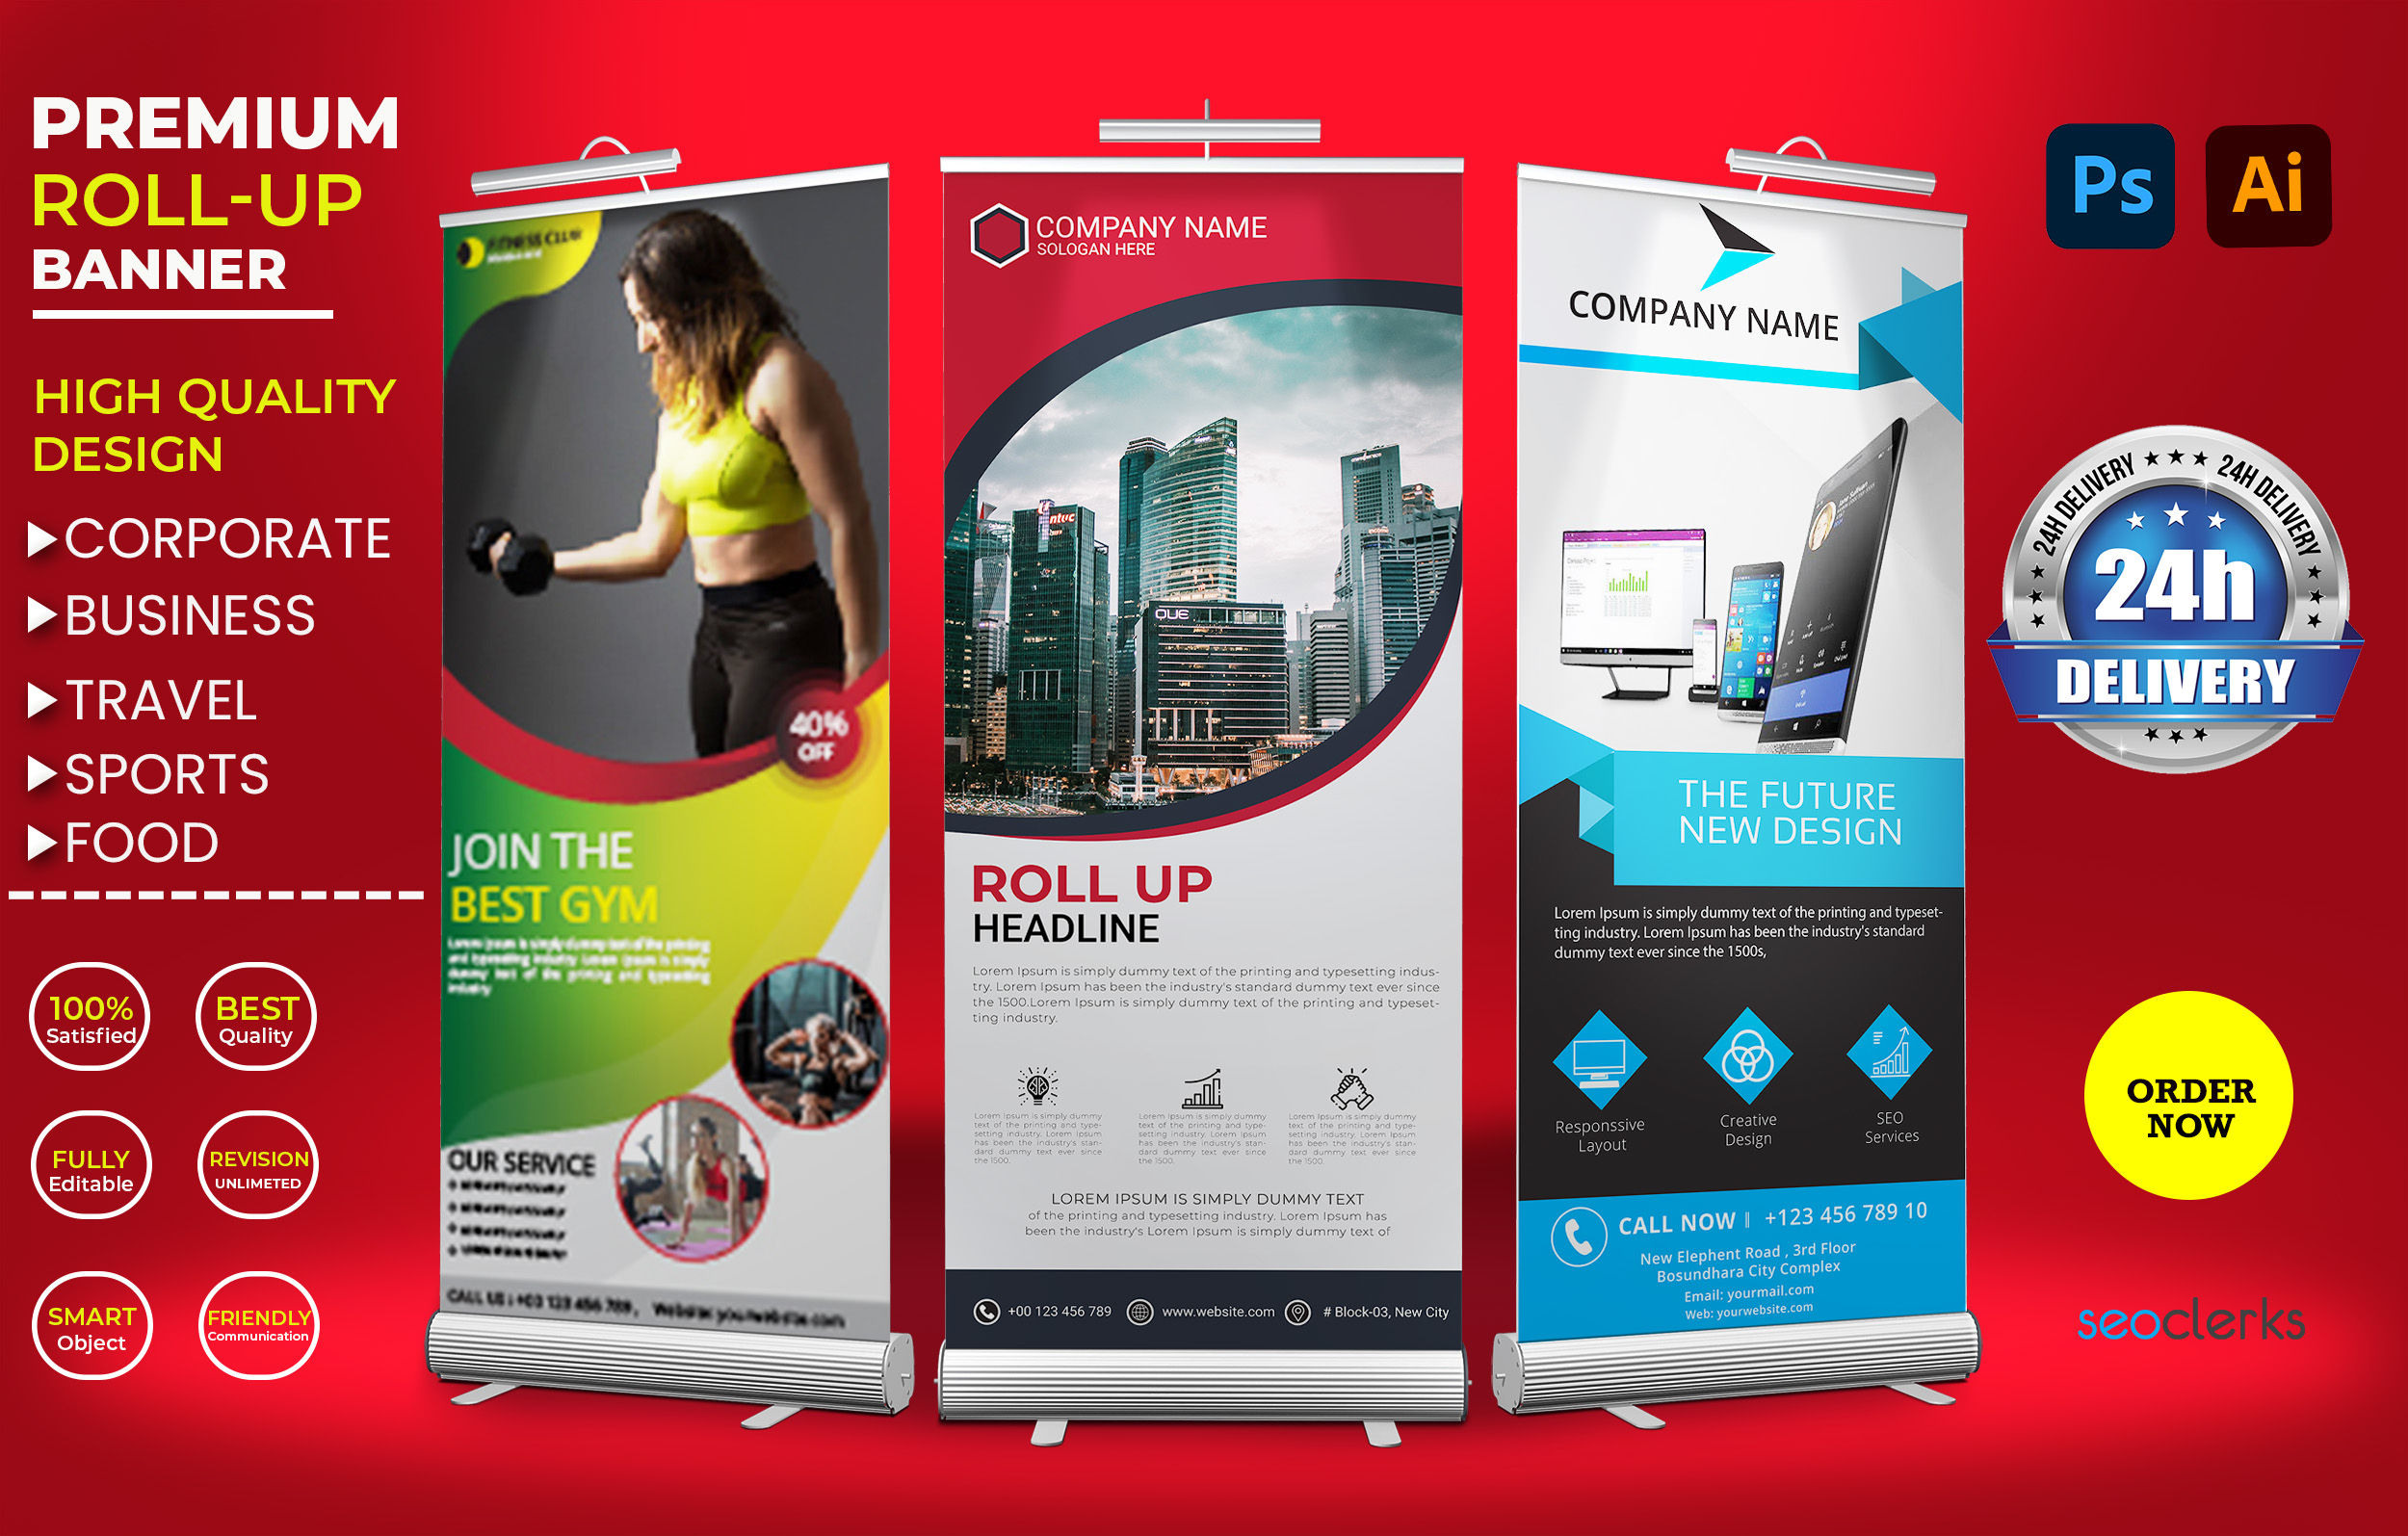 I will design premium roll up banner for business,  corporate and travel within 24 hours